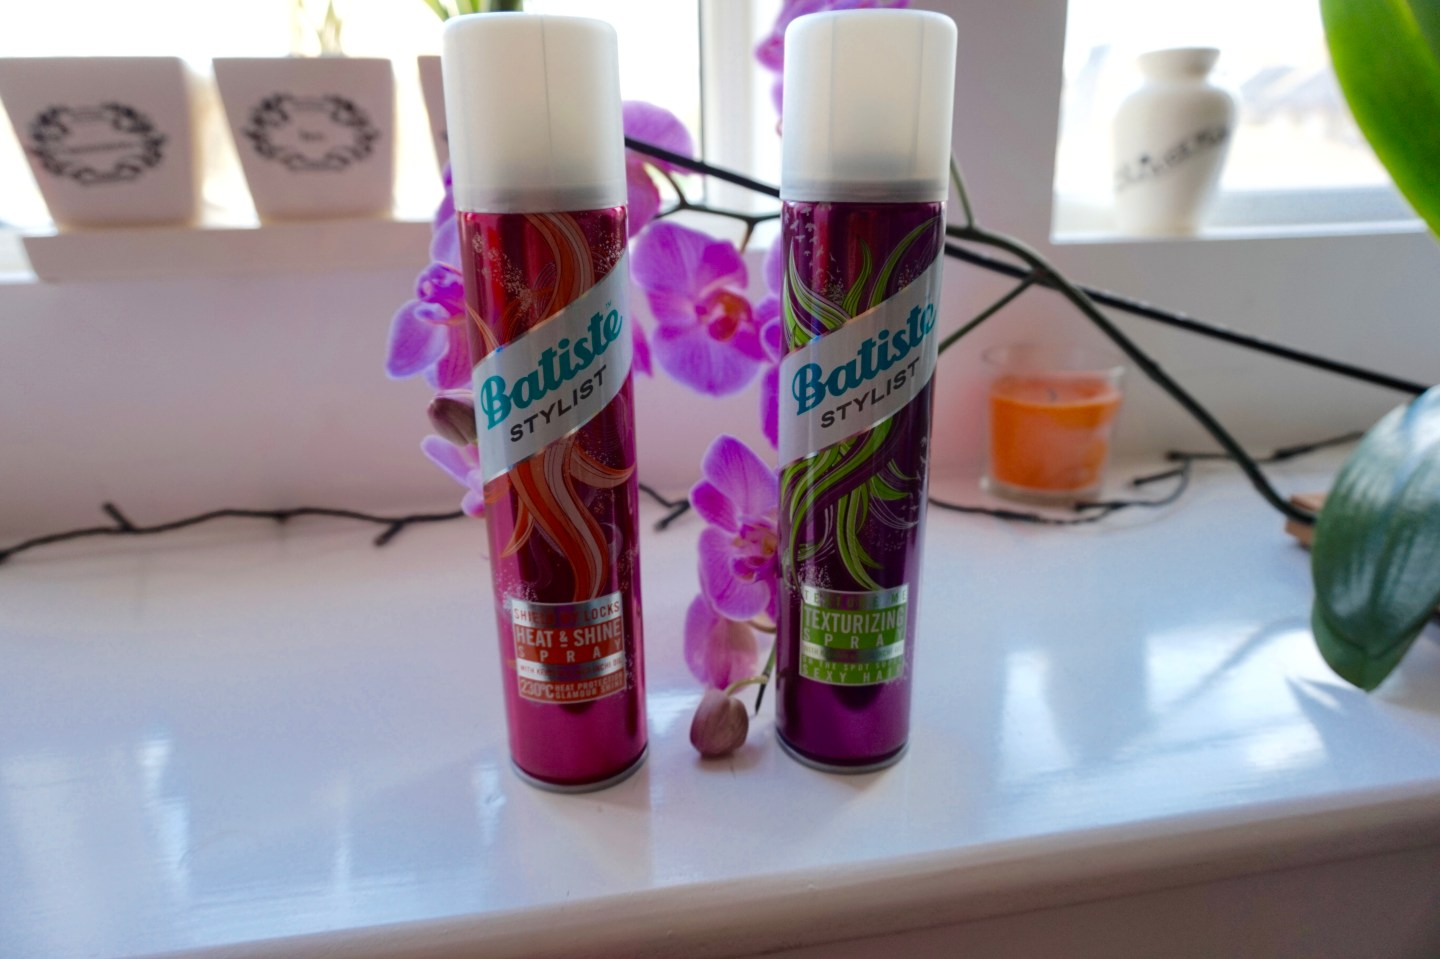 batiste-stylist-range-heat-shine-spray-texturizing-spray